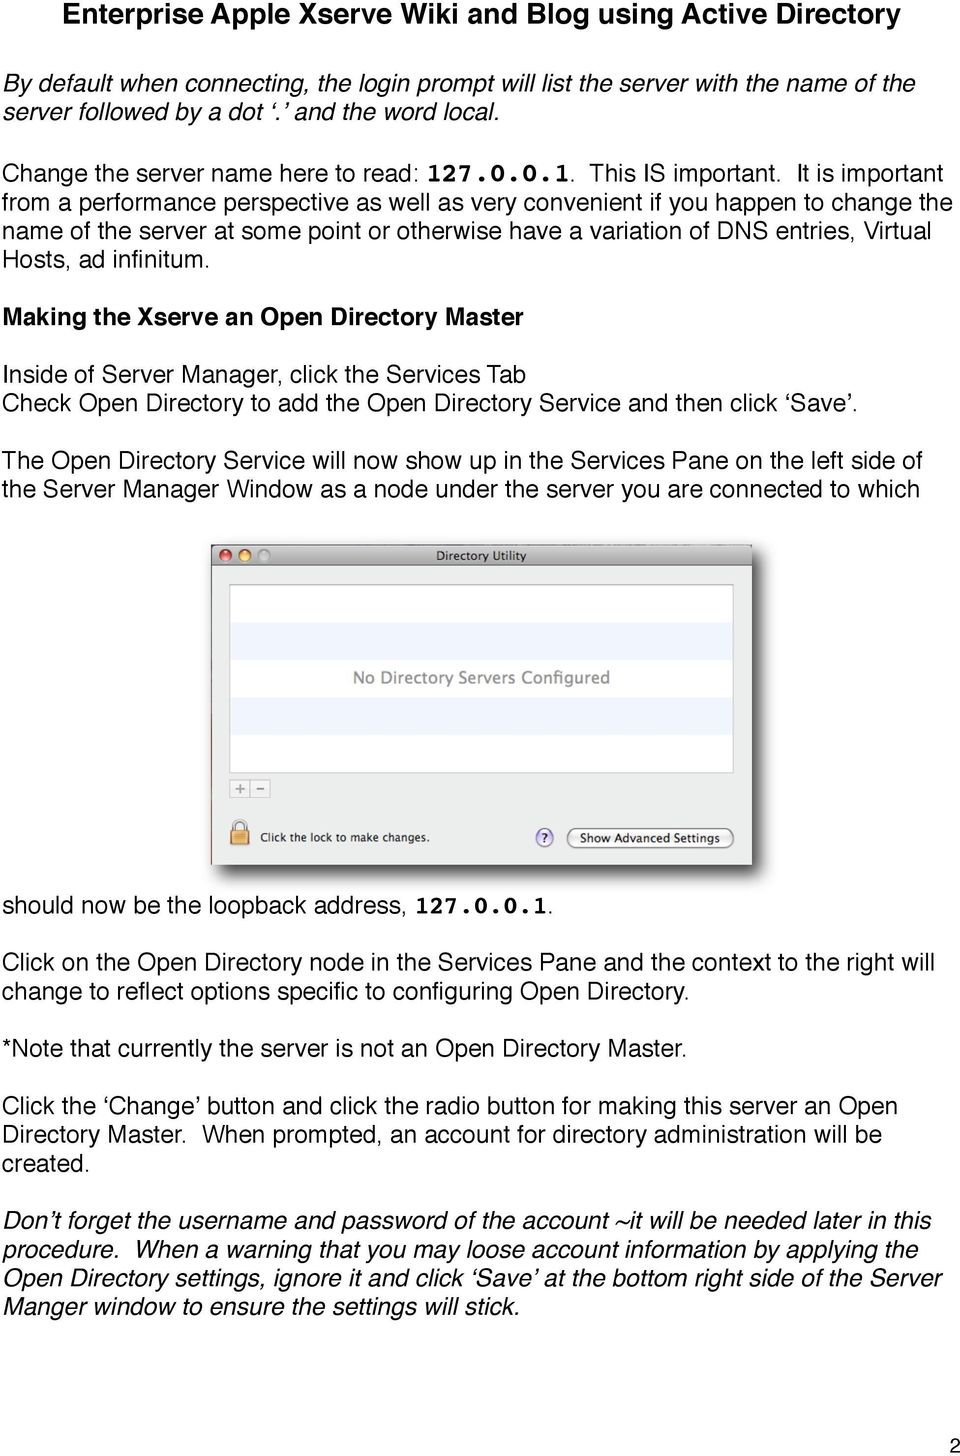 infinitum. Making the Xserve an Open Directory Master Inside of Server Manager, click the Services Tab Check Open Directory to add the Open Directory Service and then click ʻSave'.